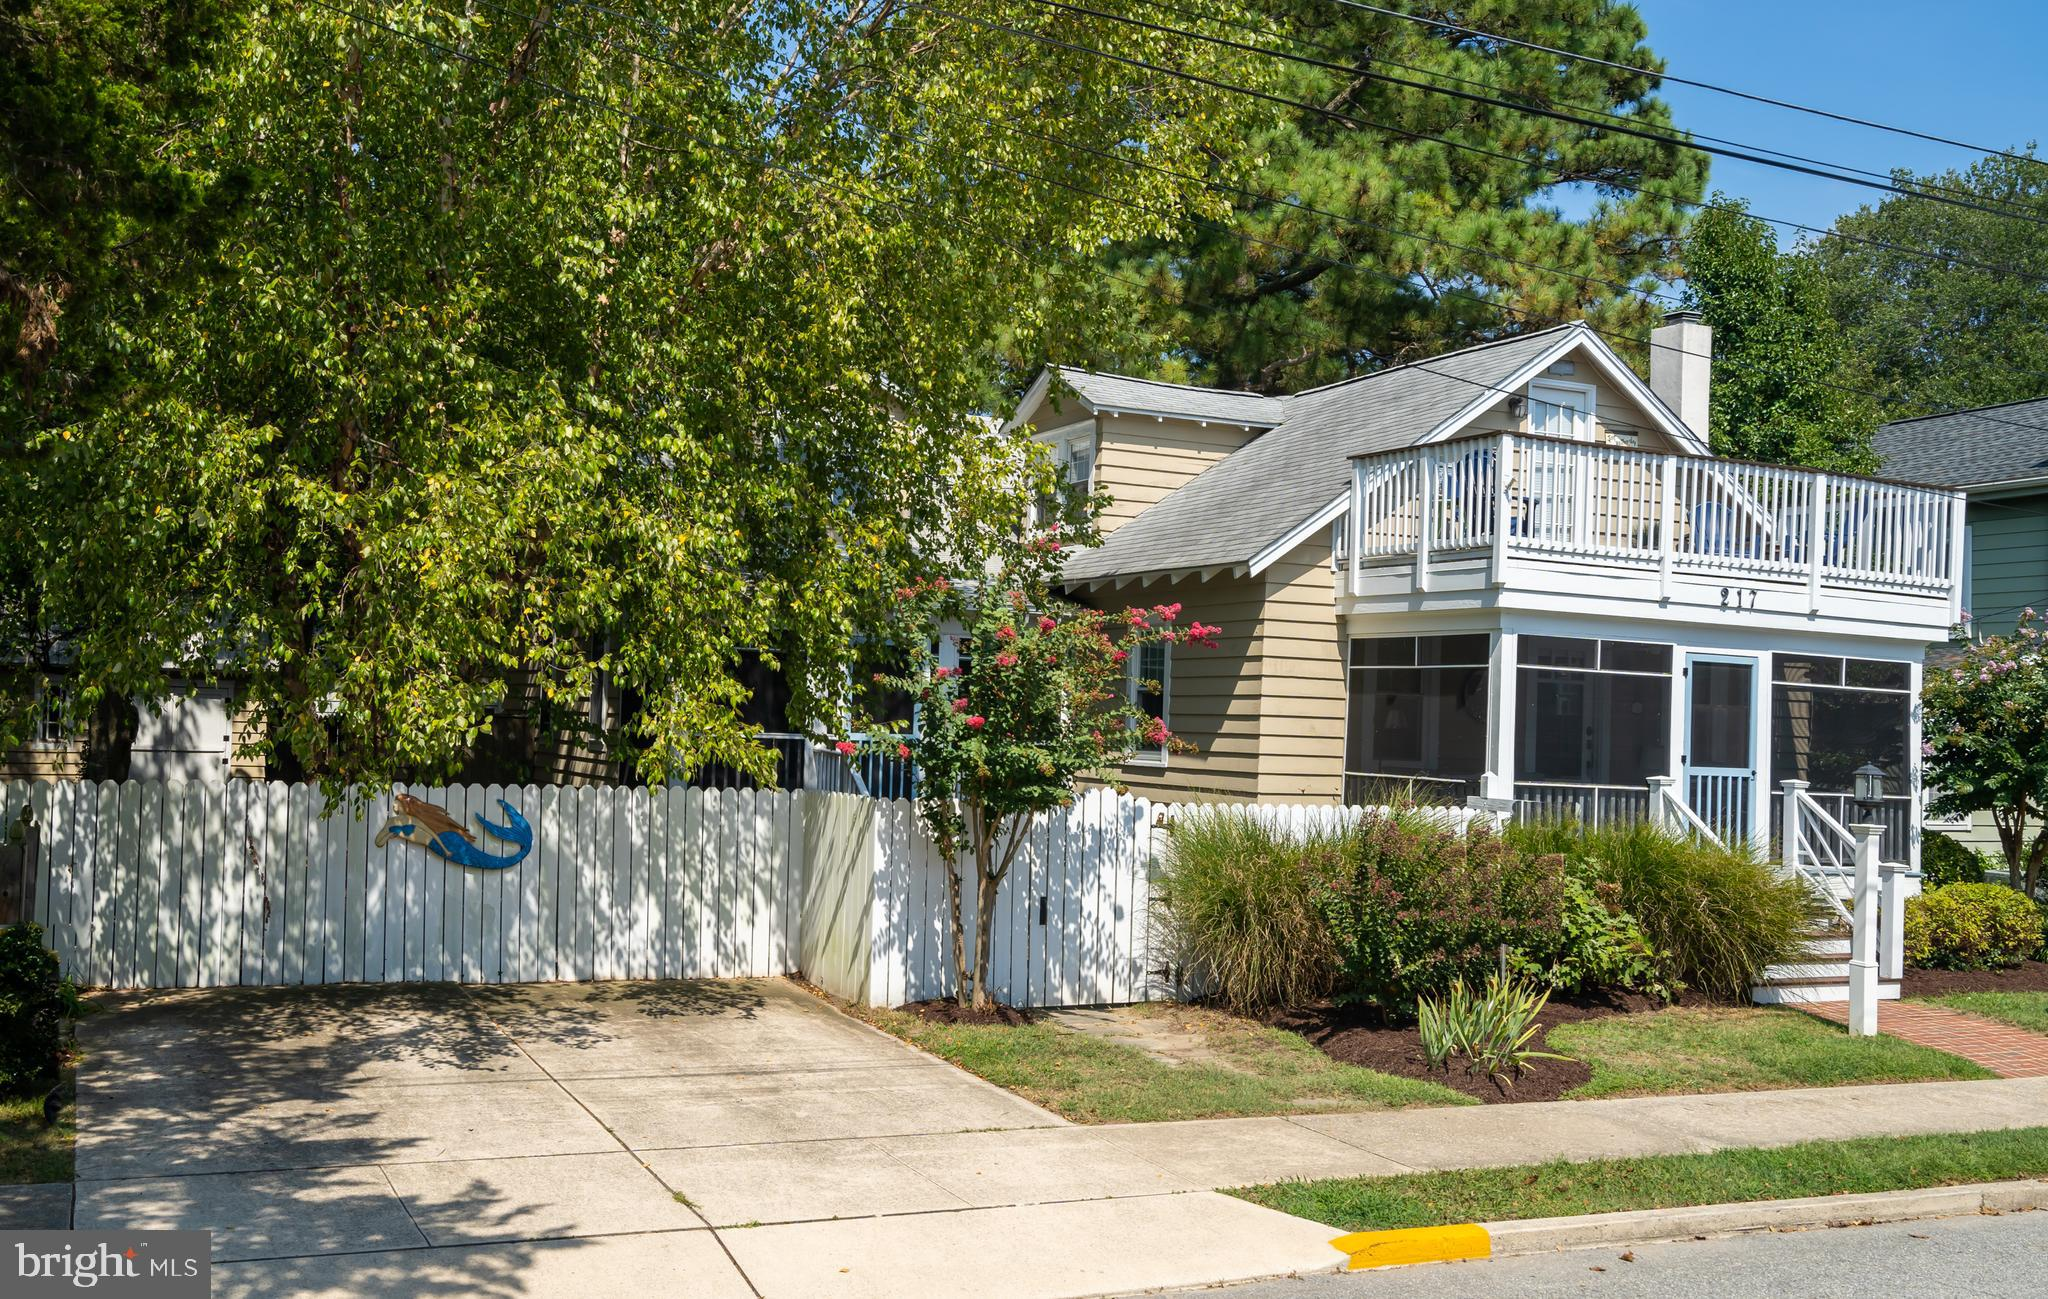 2.5 blocks to the beach! Recently renovated Rehoboth classic coastal cottage with 6 bedrooms and 5 f